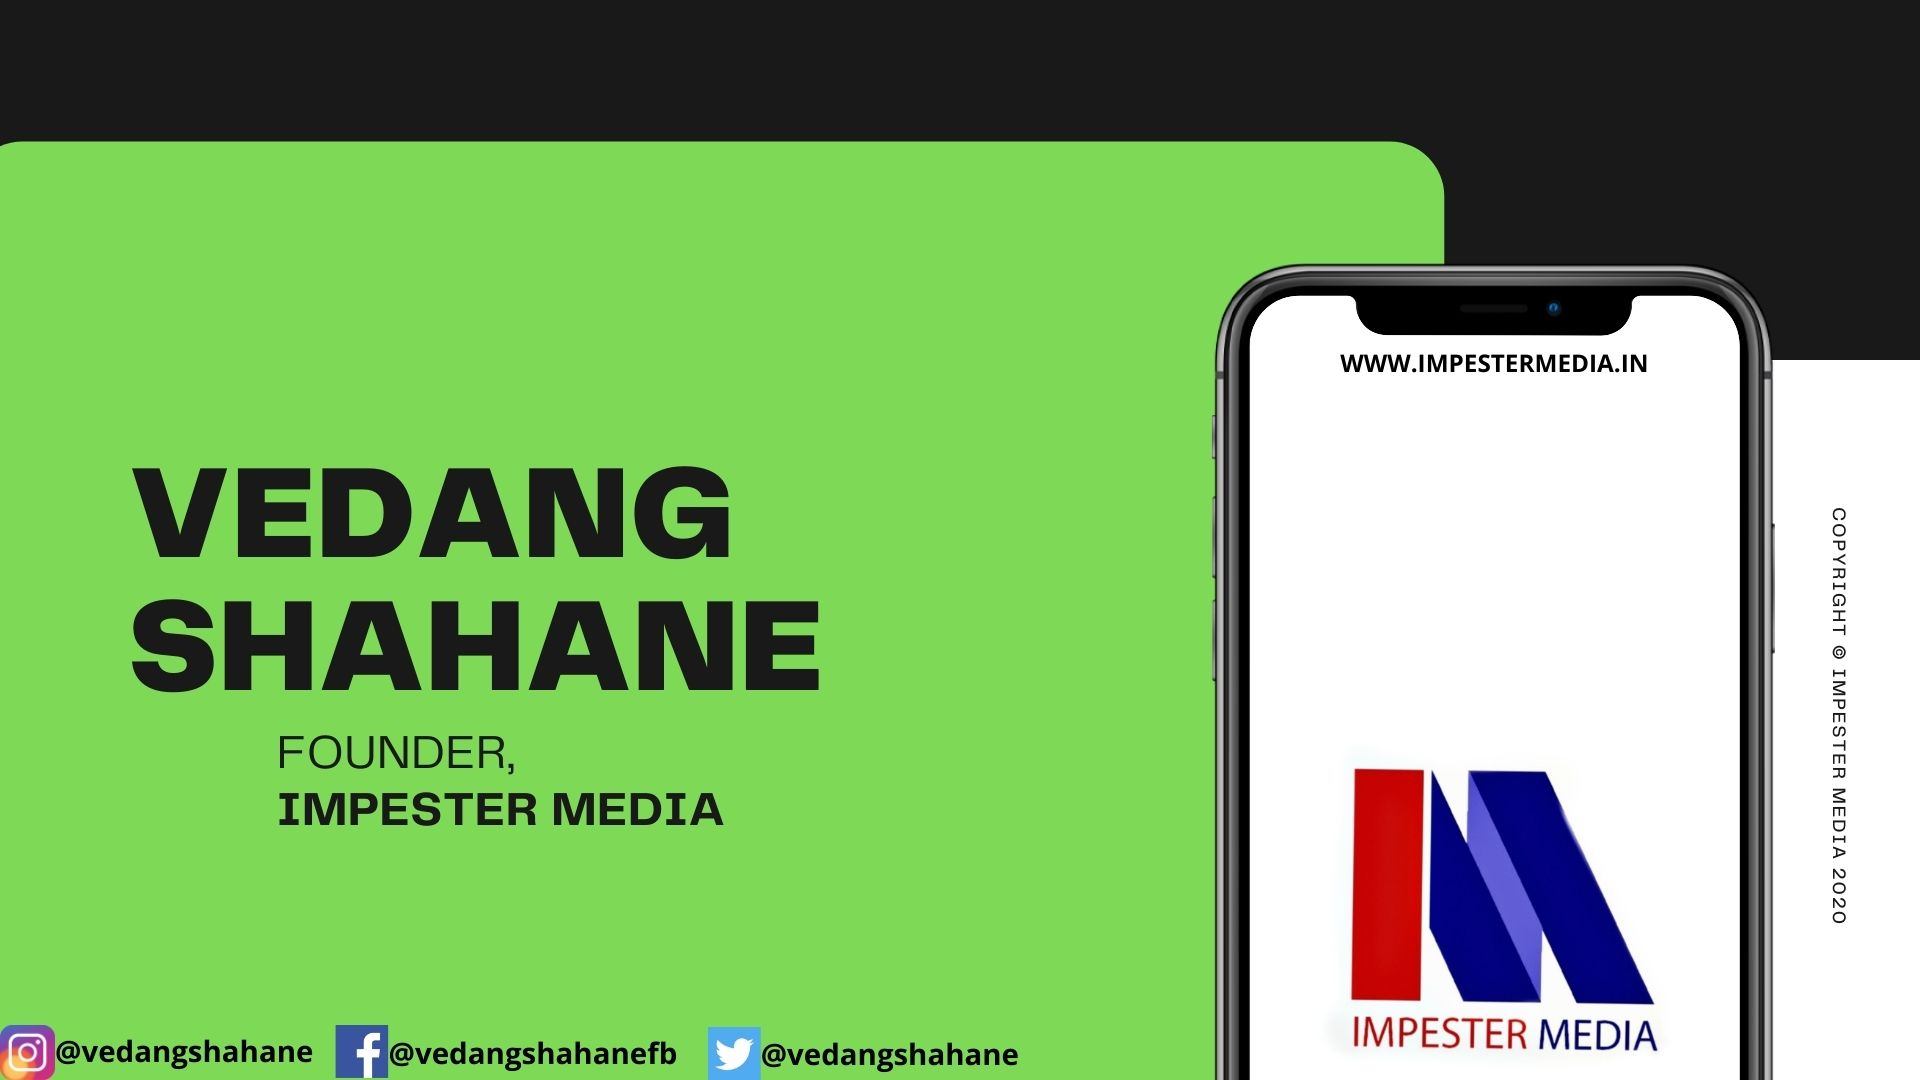 Vedang Shahane Becomes the Top Digital Marketing Professional